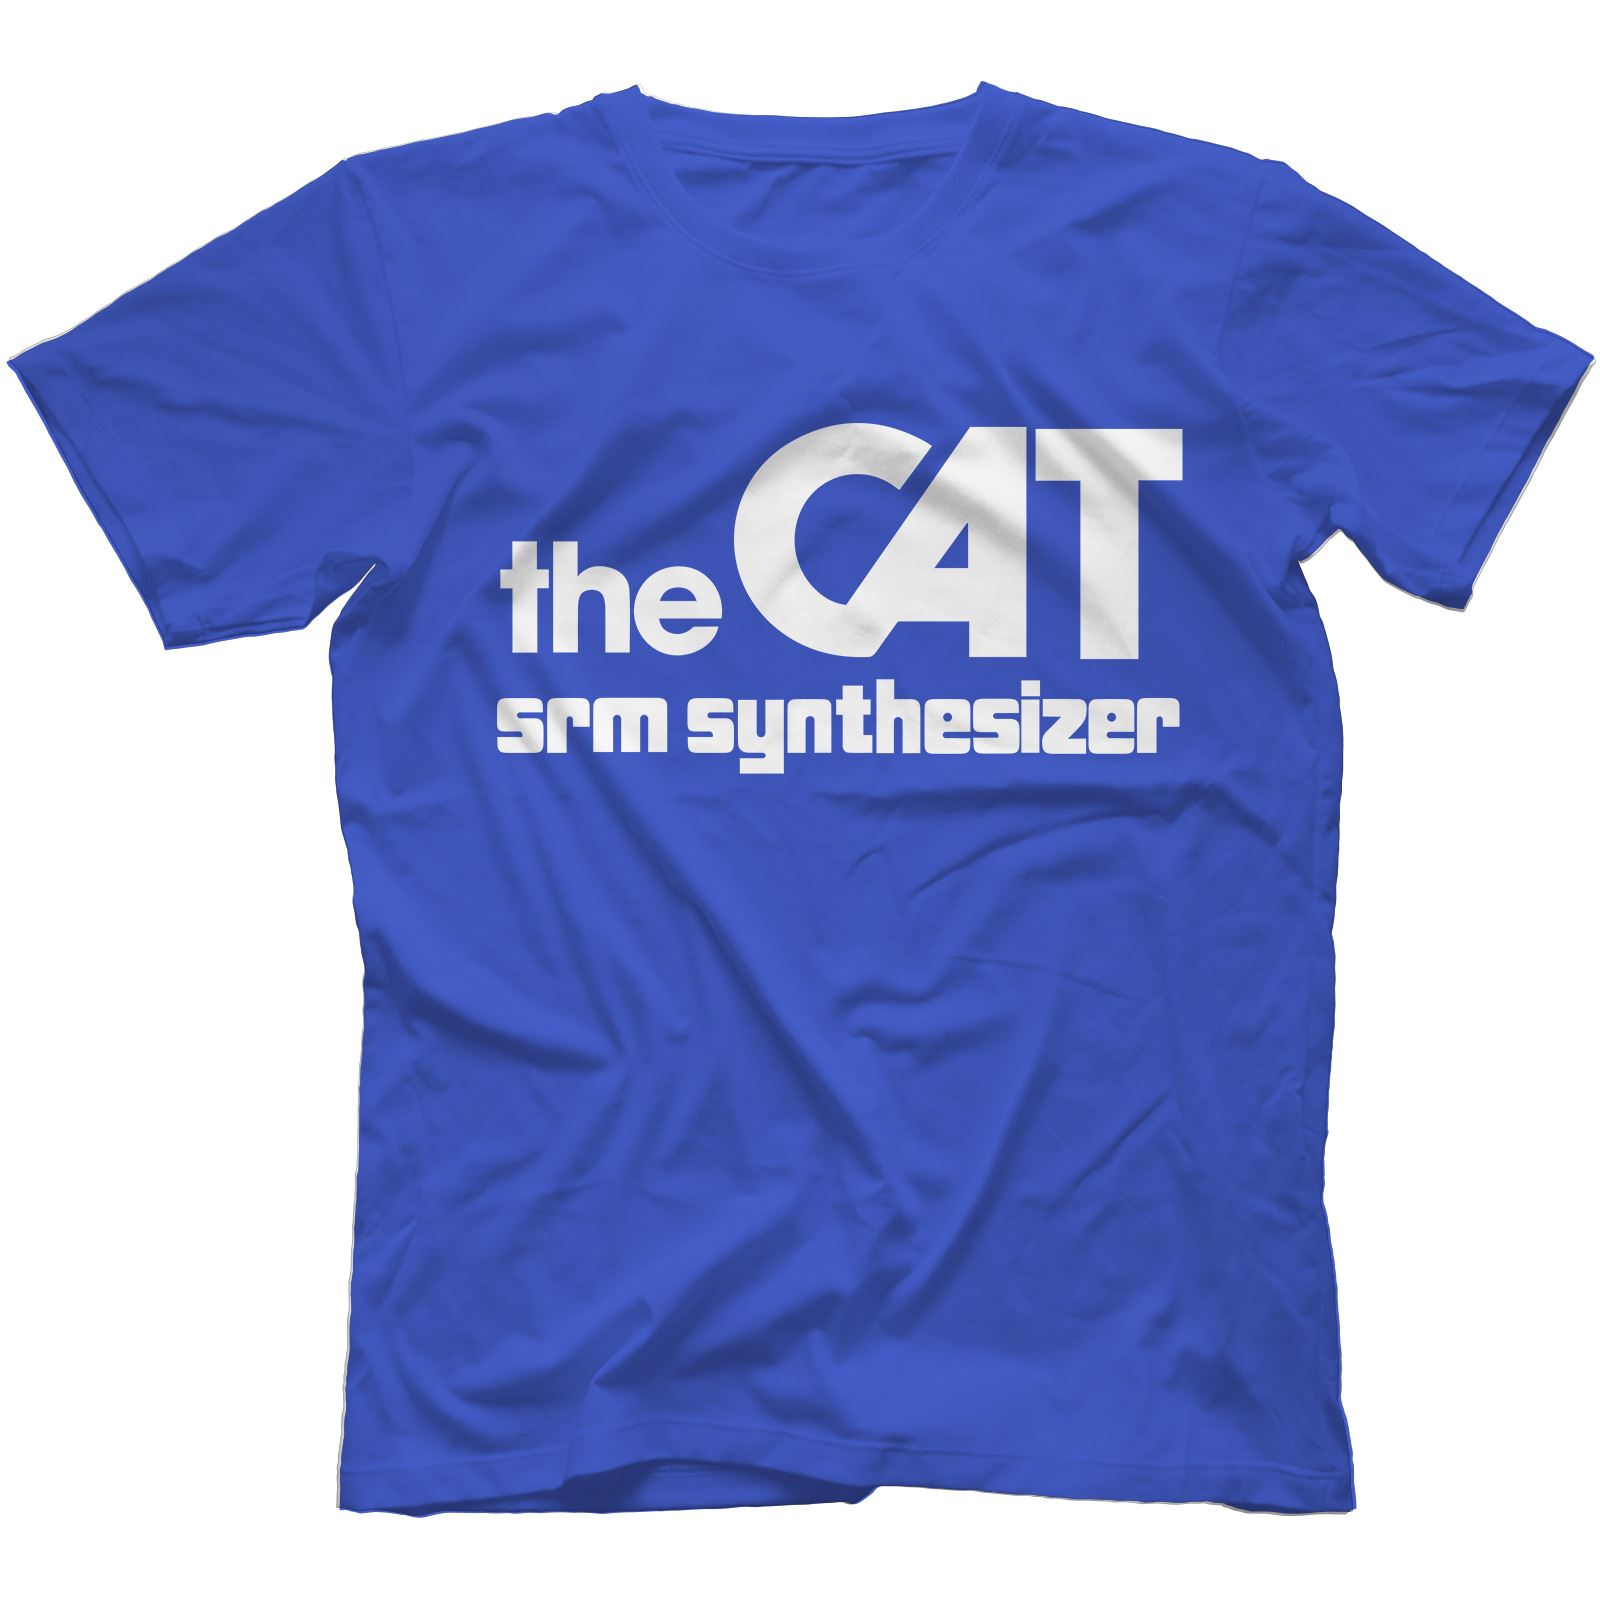 The-Cat-SRM-Synthesiser-T-Shirt-100-Cotton-Retro-Analog-Arp-Odyssey Indexbild 49